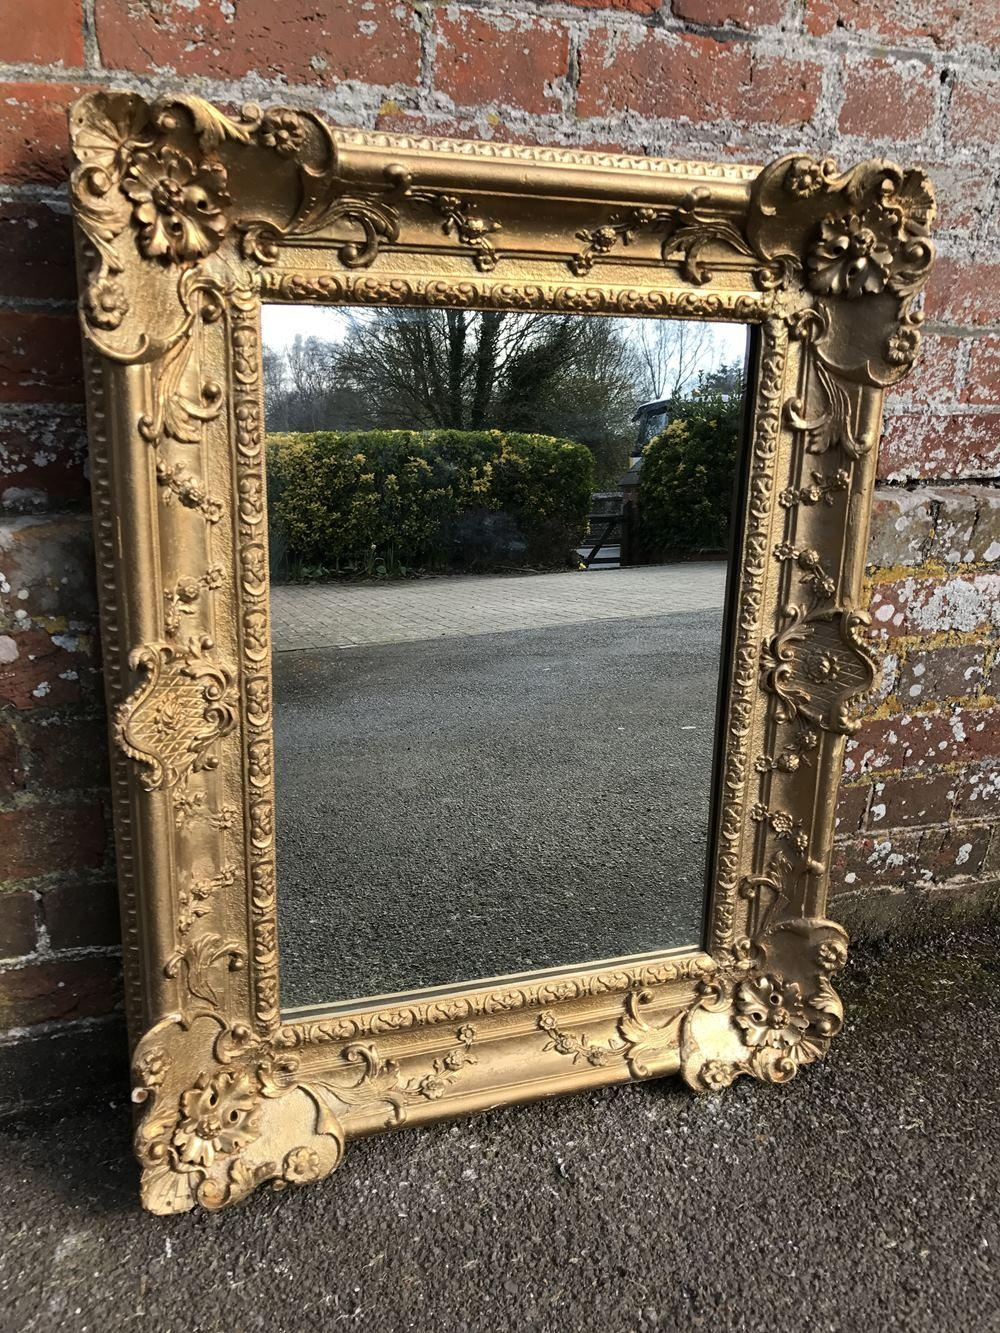 A Wonderful Antique 19Th Century French Carved Wood And Gesso Intended For French Mirrors Antique (Image 7 of 20)